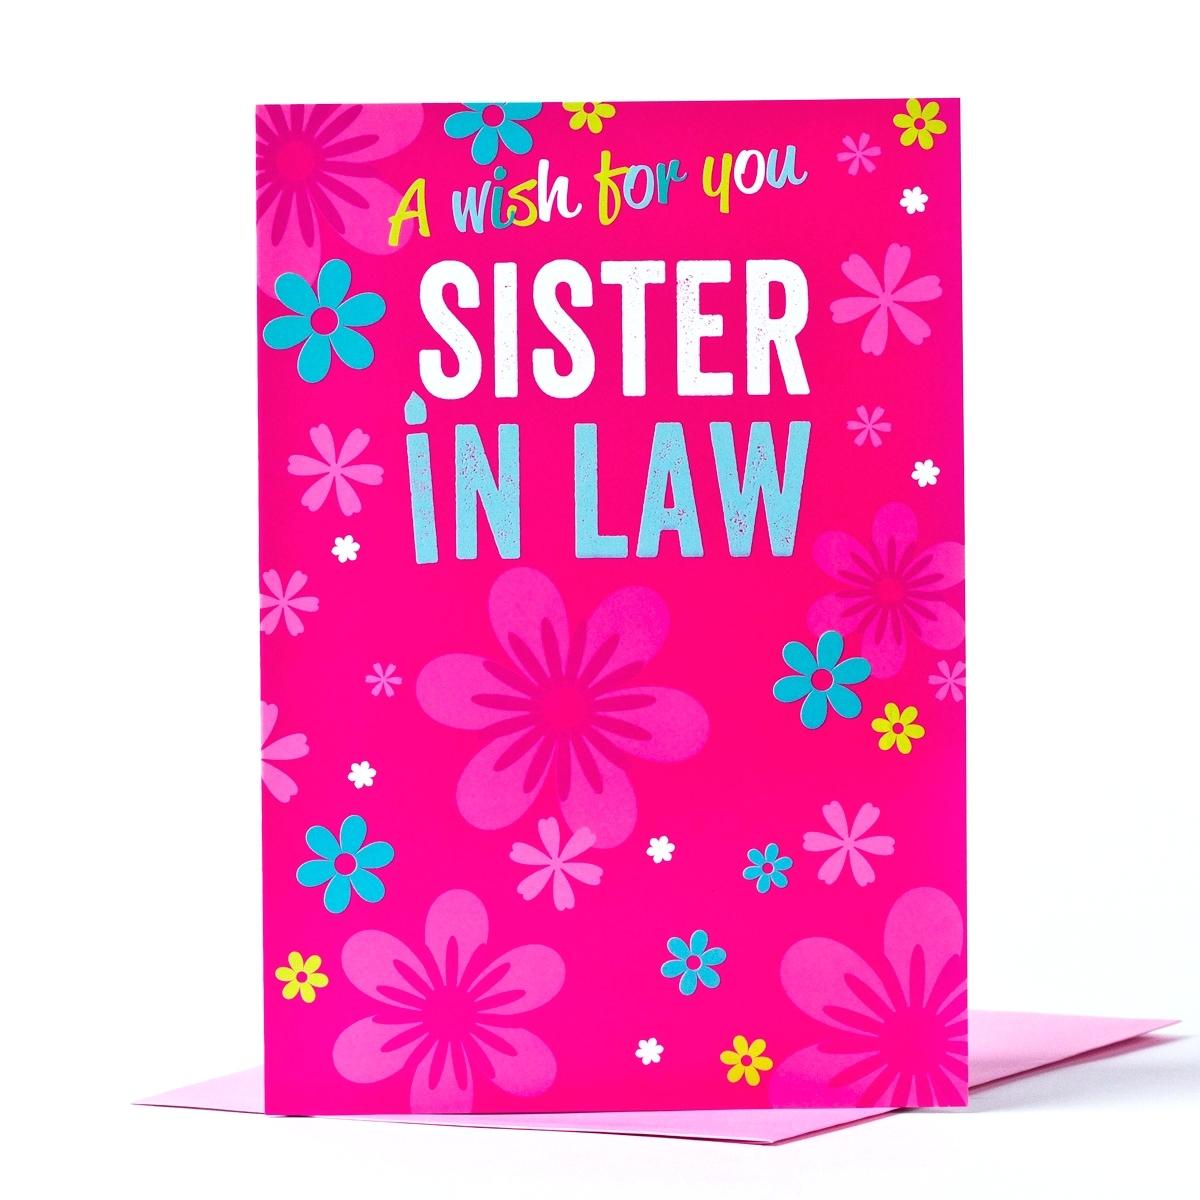 free birthday greeting cards for sister in law ; birthday-cards-for-sister-4-4-free-birthday-greeting-cards-for-sister-in-law